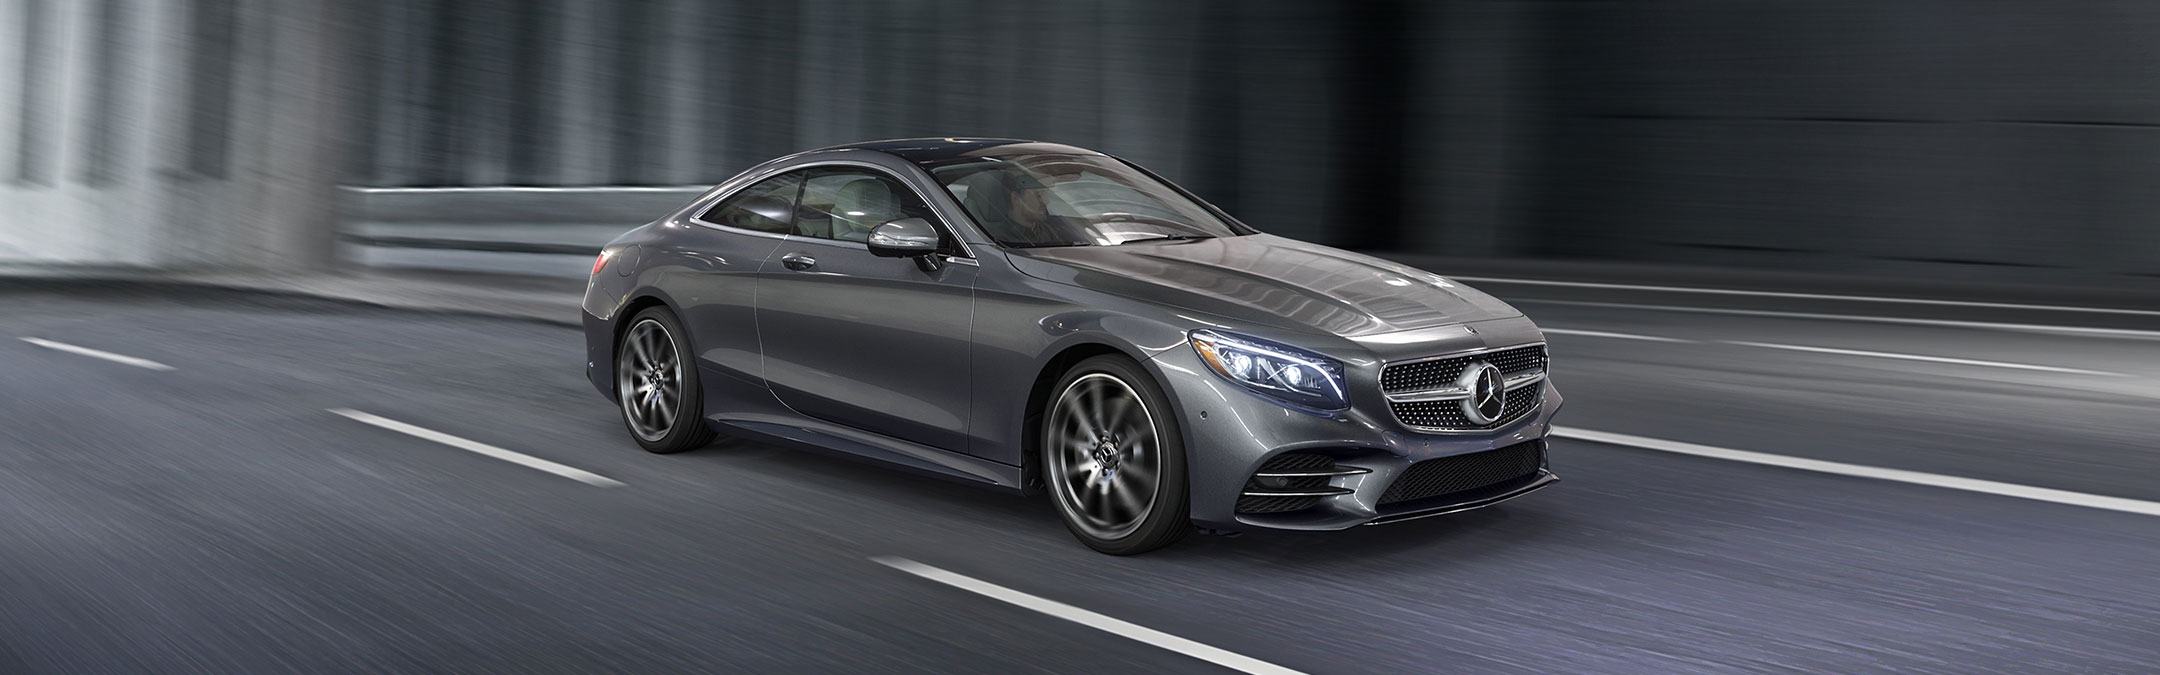 2018 s class luxury coupe mercedes benz for Mercedes benz oakland ca